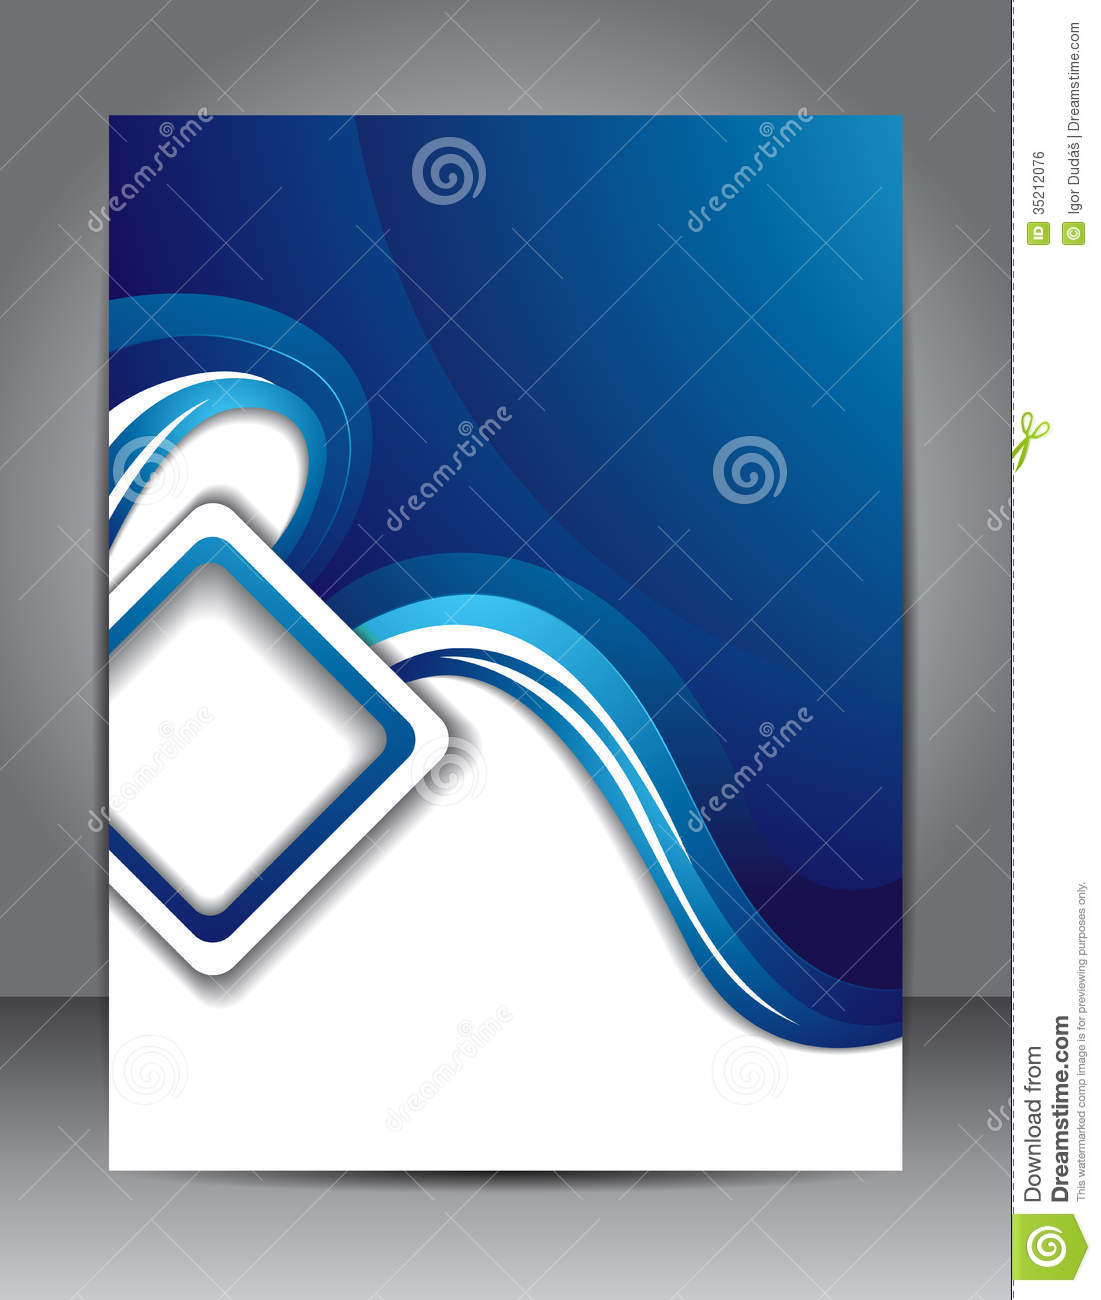 Brochure design stock illustration illustration of chrome for Background for brochure design